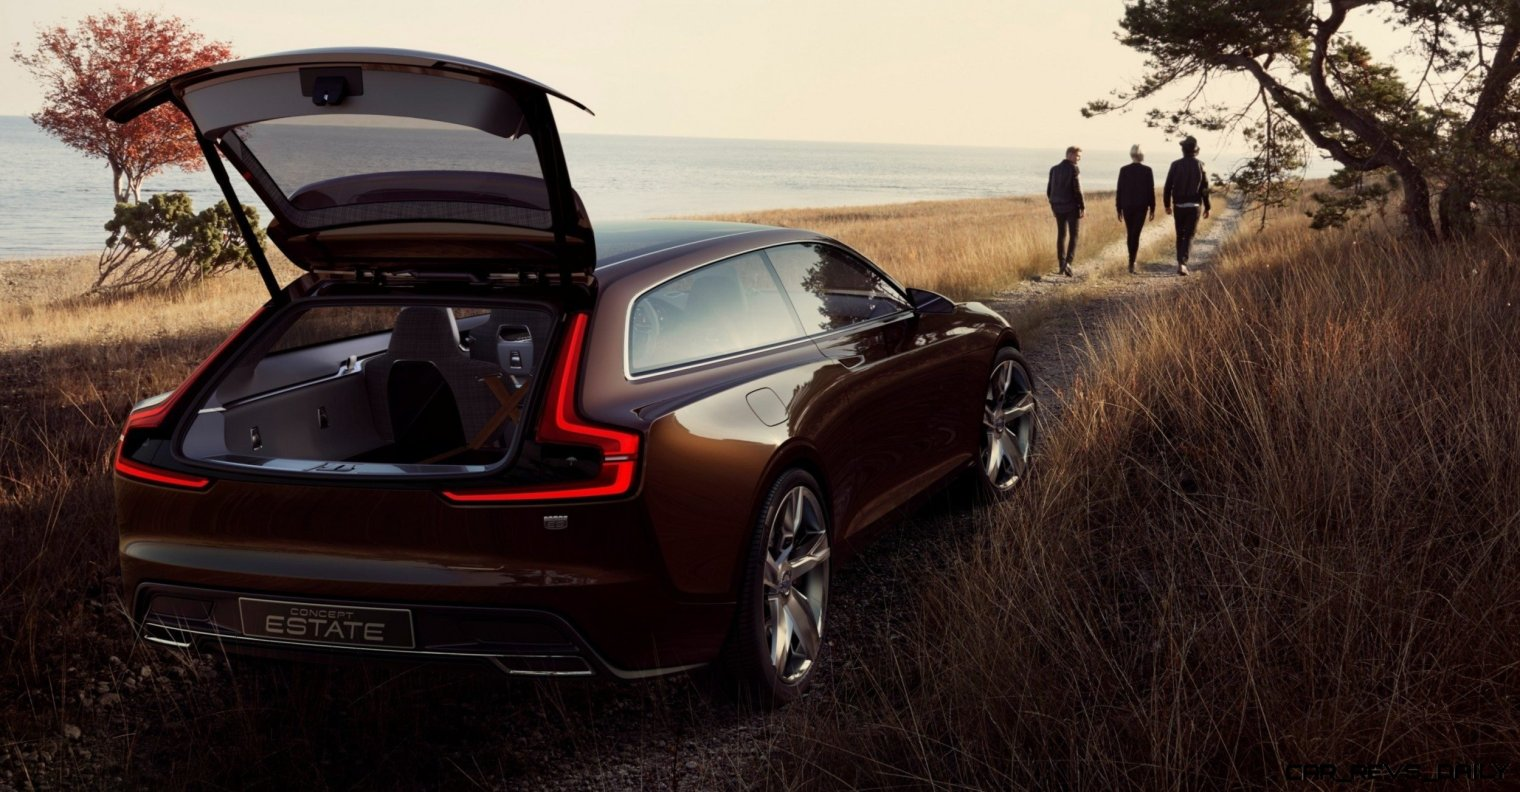 Concept Estate Confirms It! Volvo's New Design Lead Th. Ingenlath Should Be Sweden's Man of the Year 13